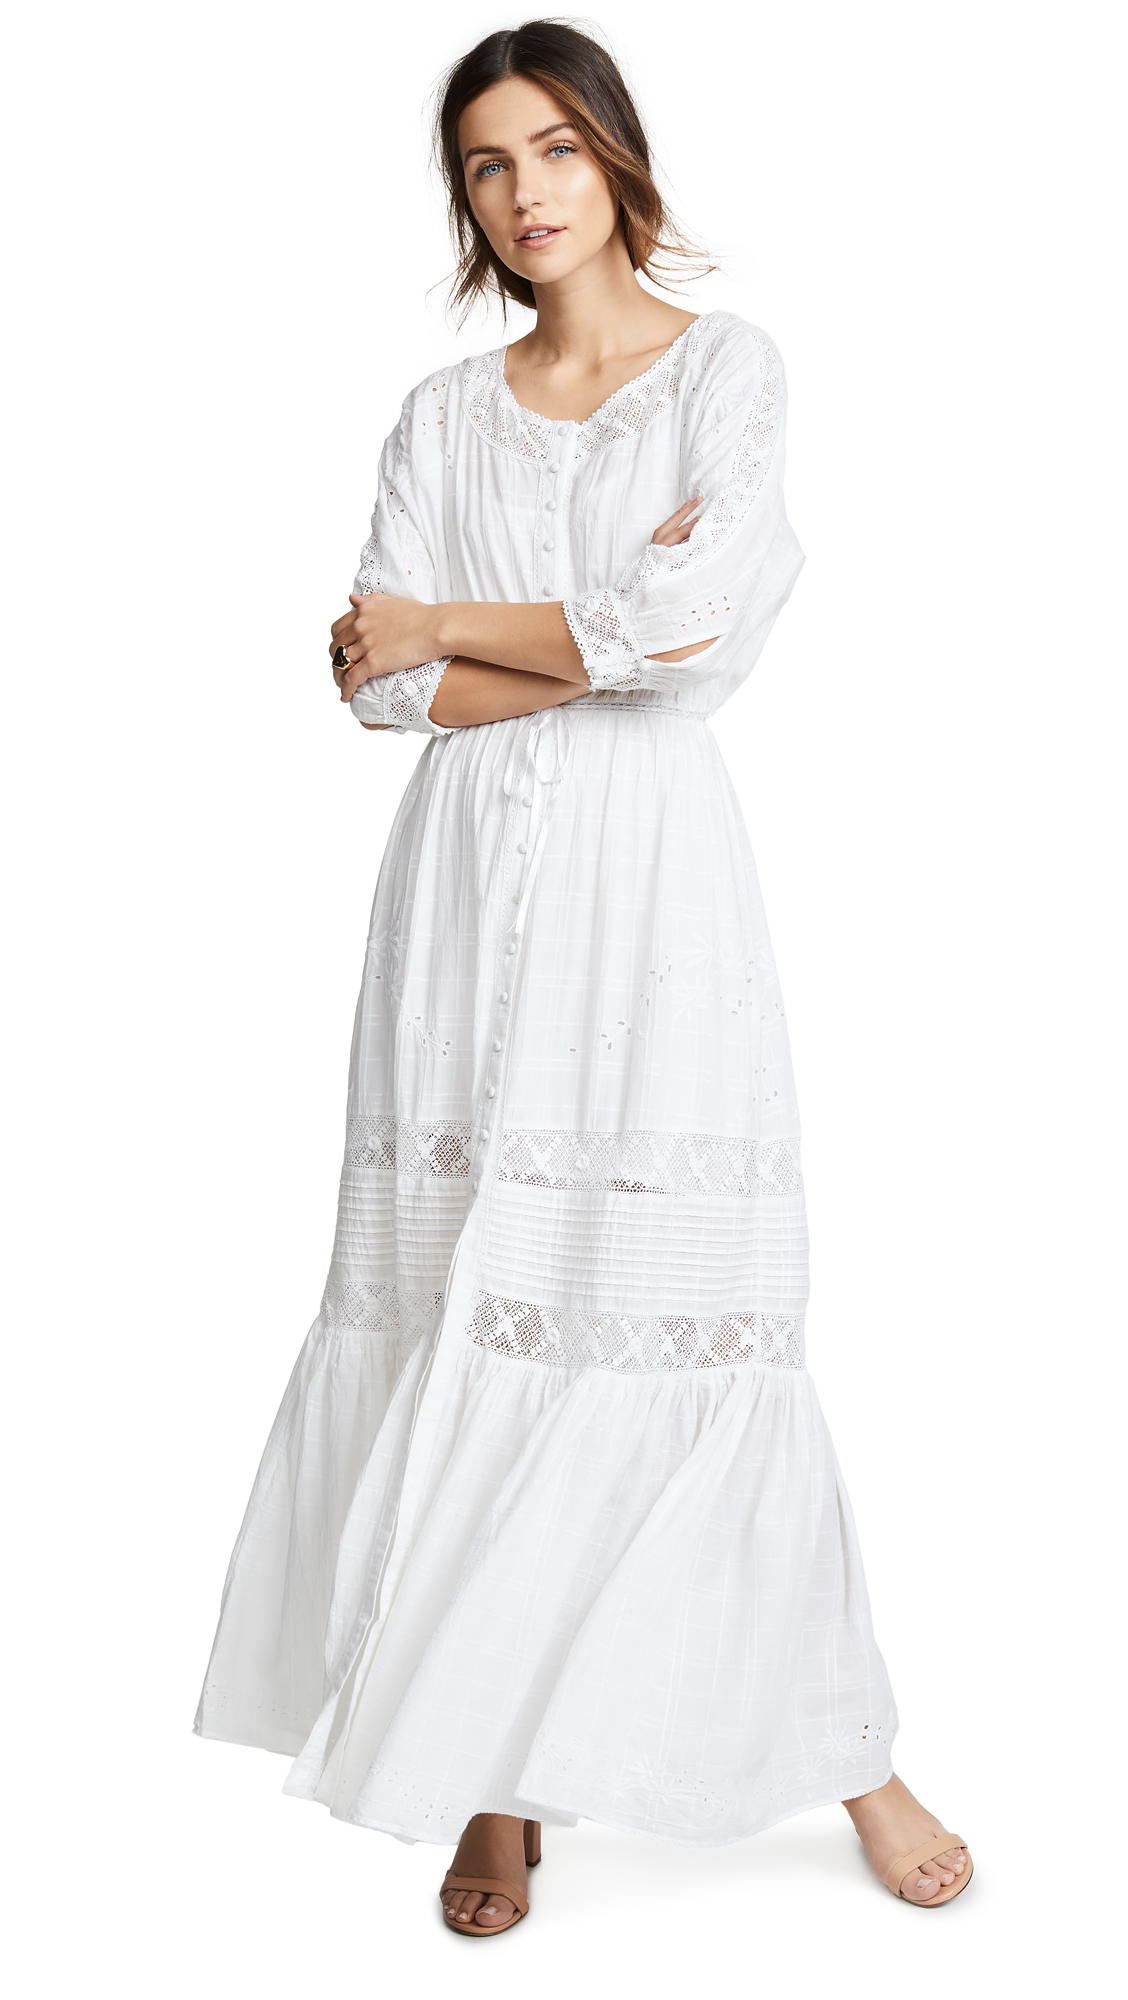 LOVESHACKFANCY Callan Floral-Embroidered Eyelet A-Line Maxi Dress in White